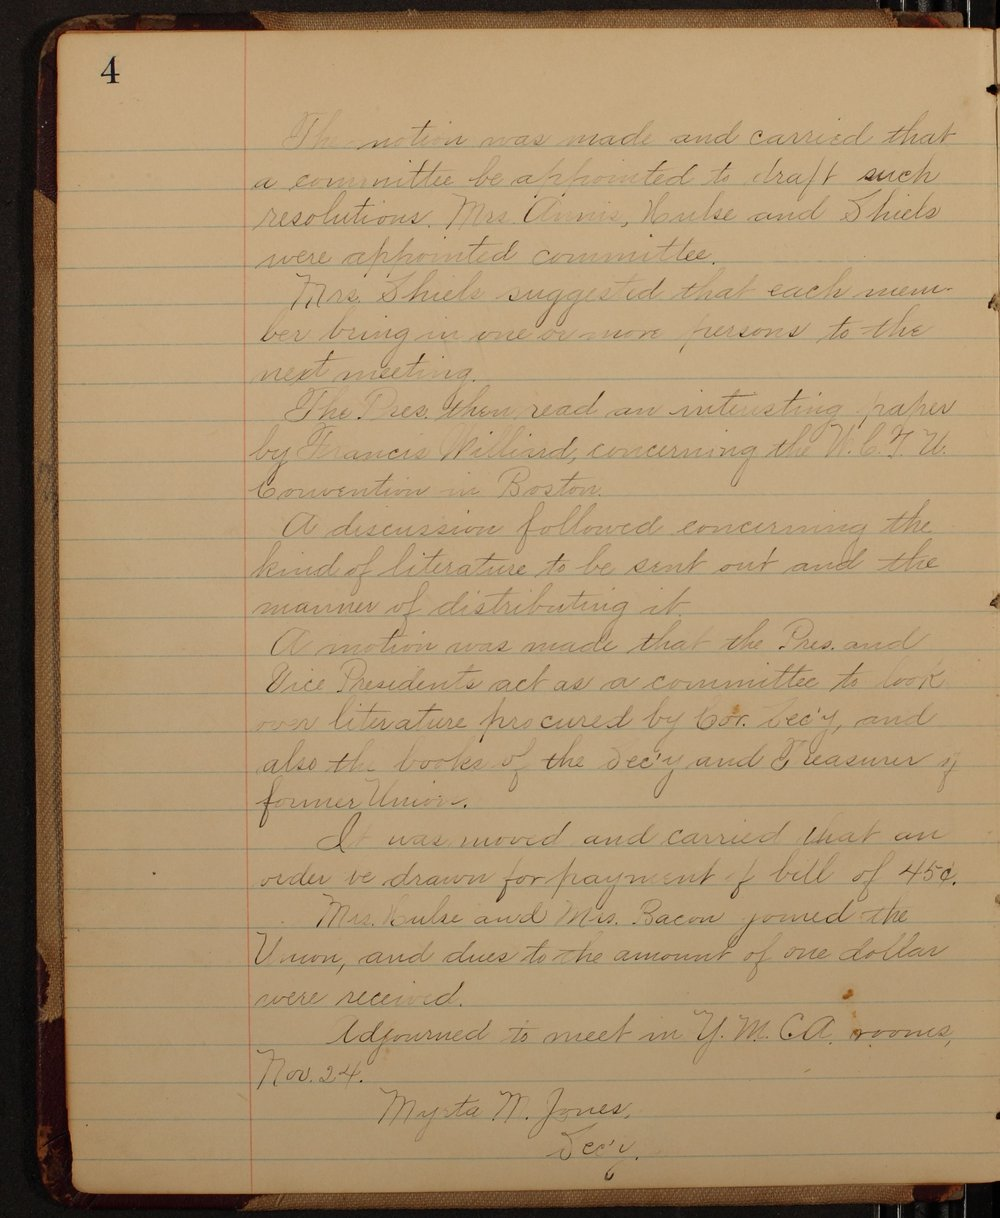 Minutes of the McPherson Chapter of the Woman's Christian Temperance Union - 4